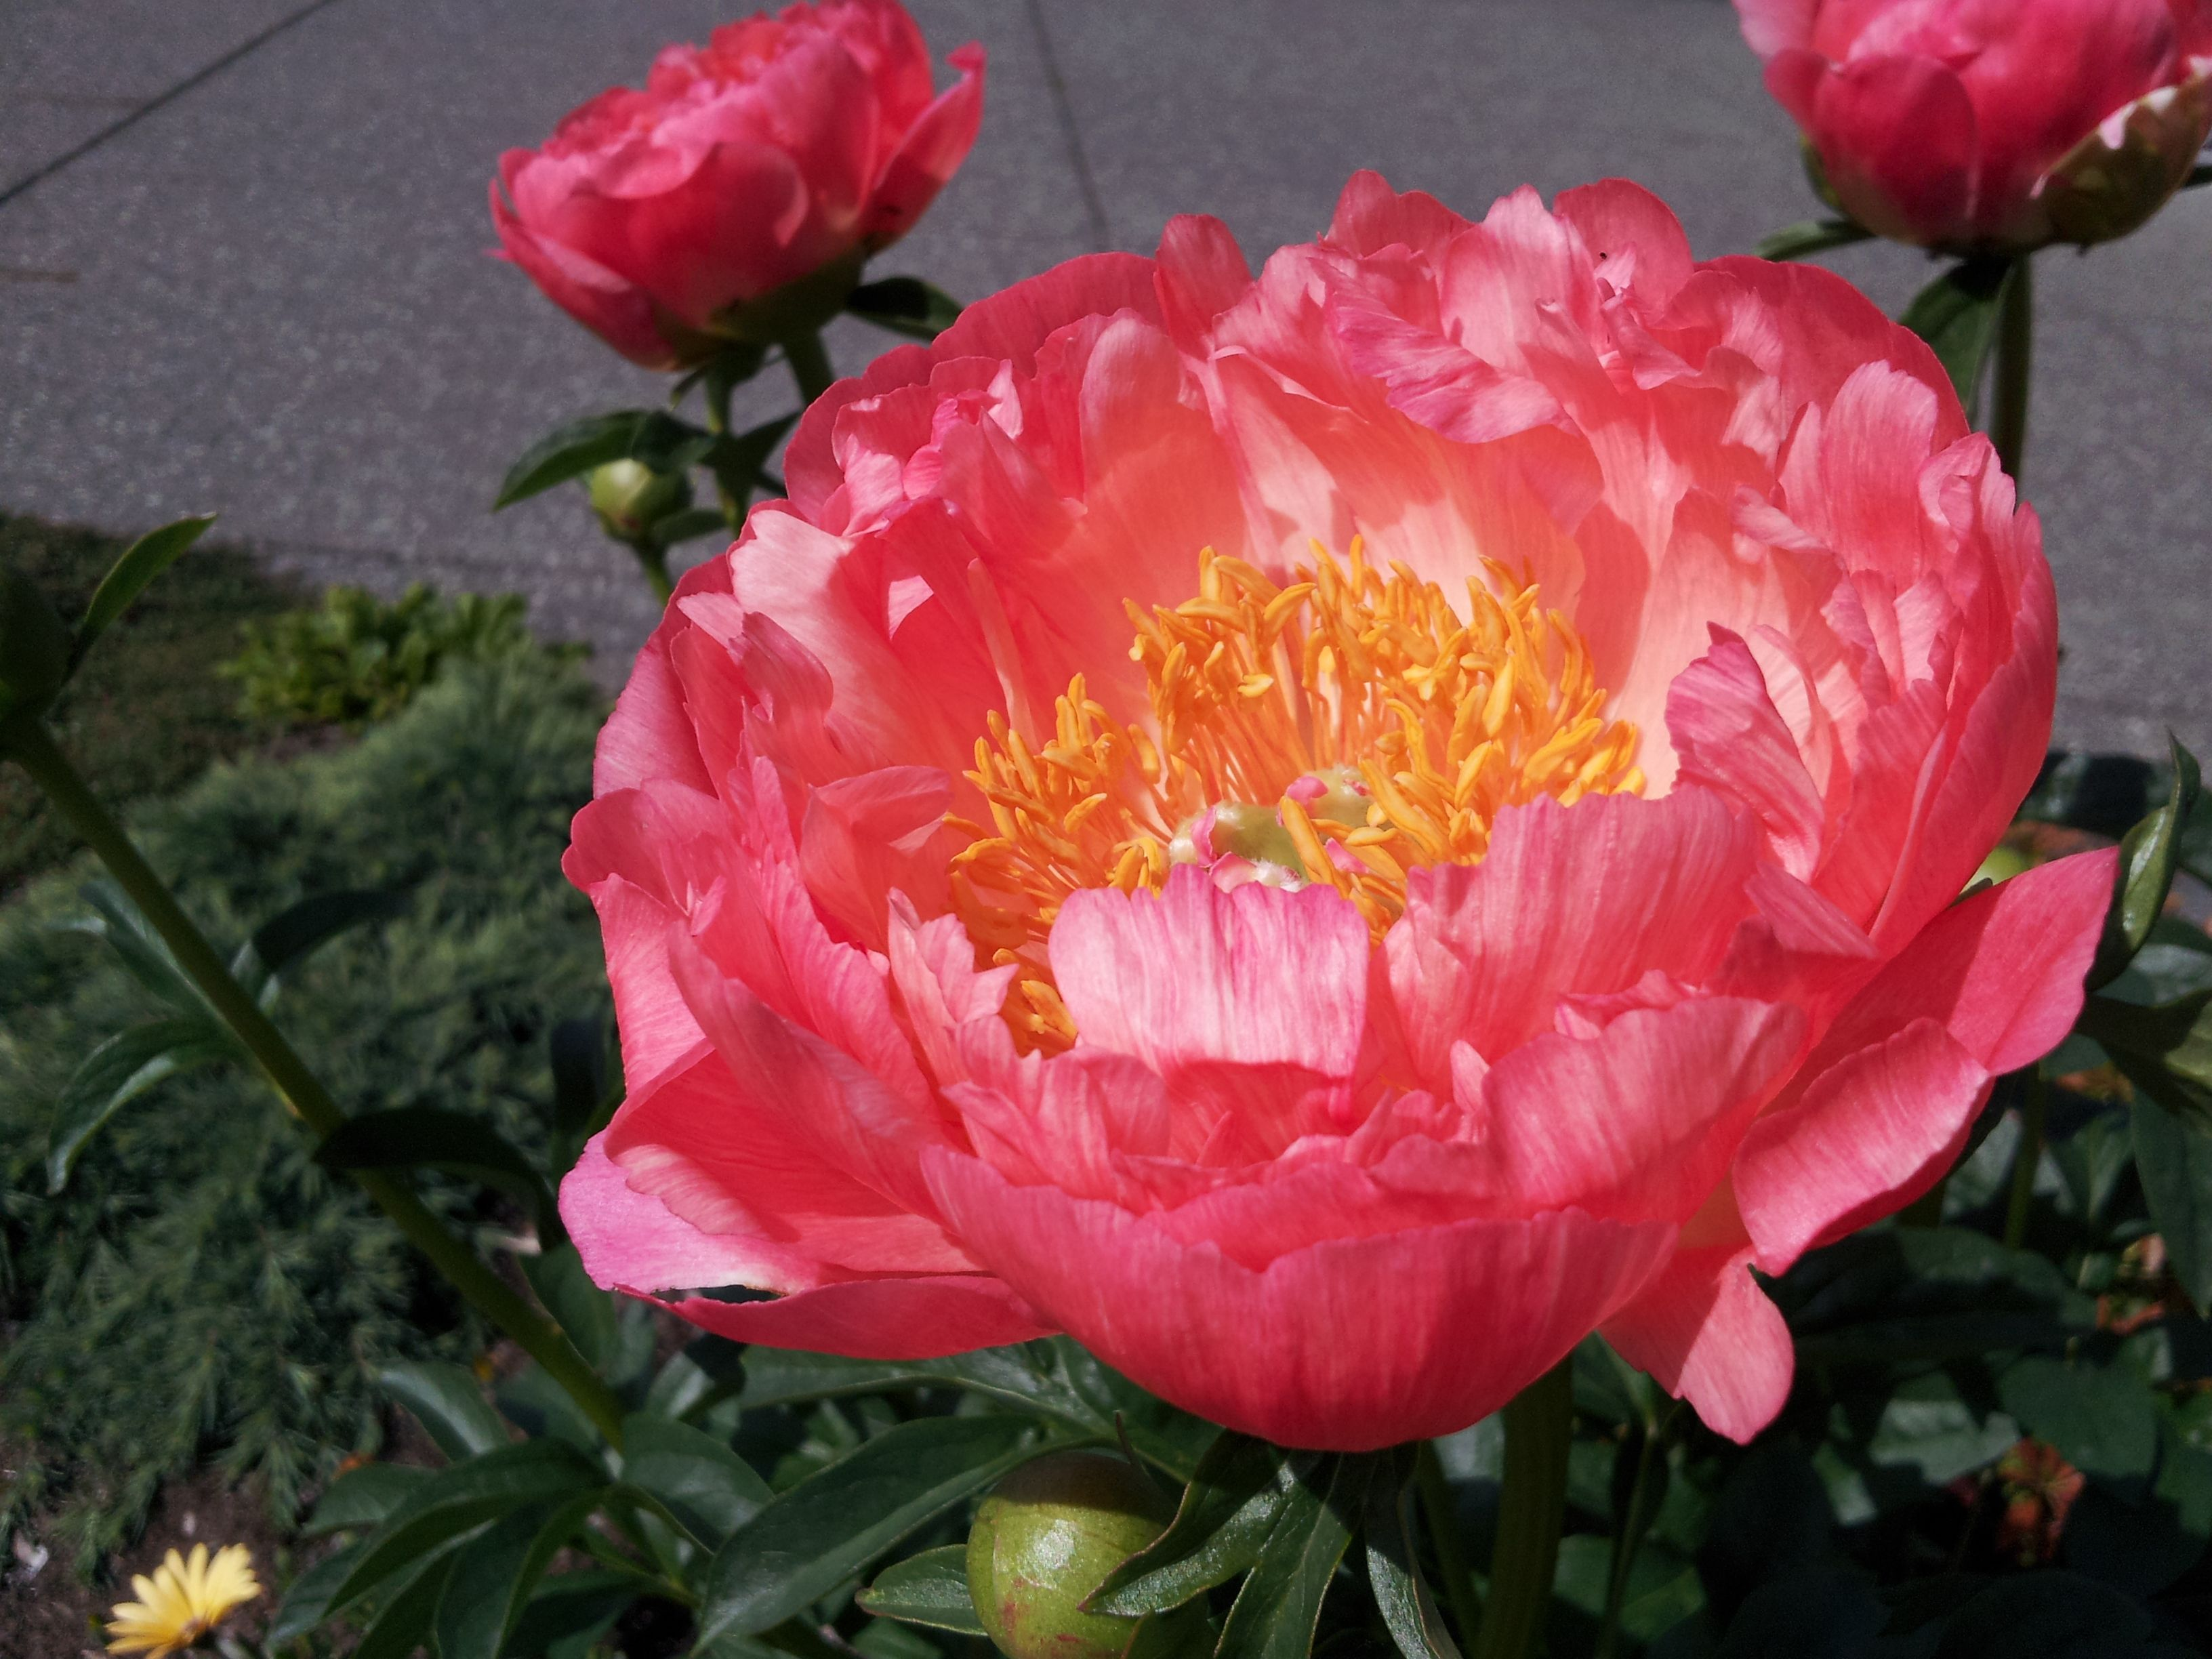 Coral Sunset Peony: description, photo 49